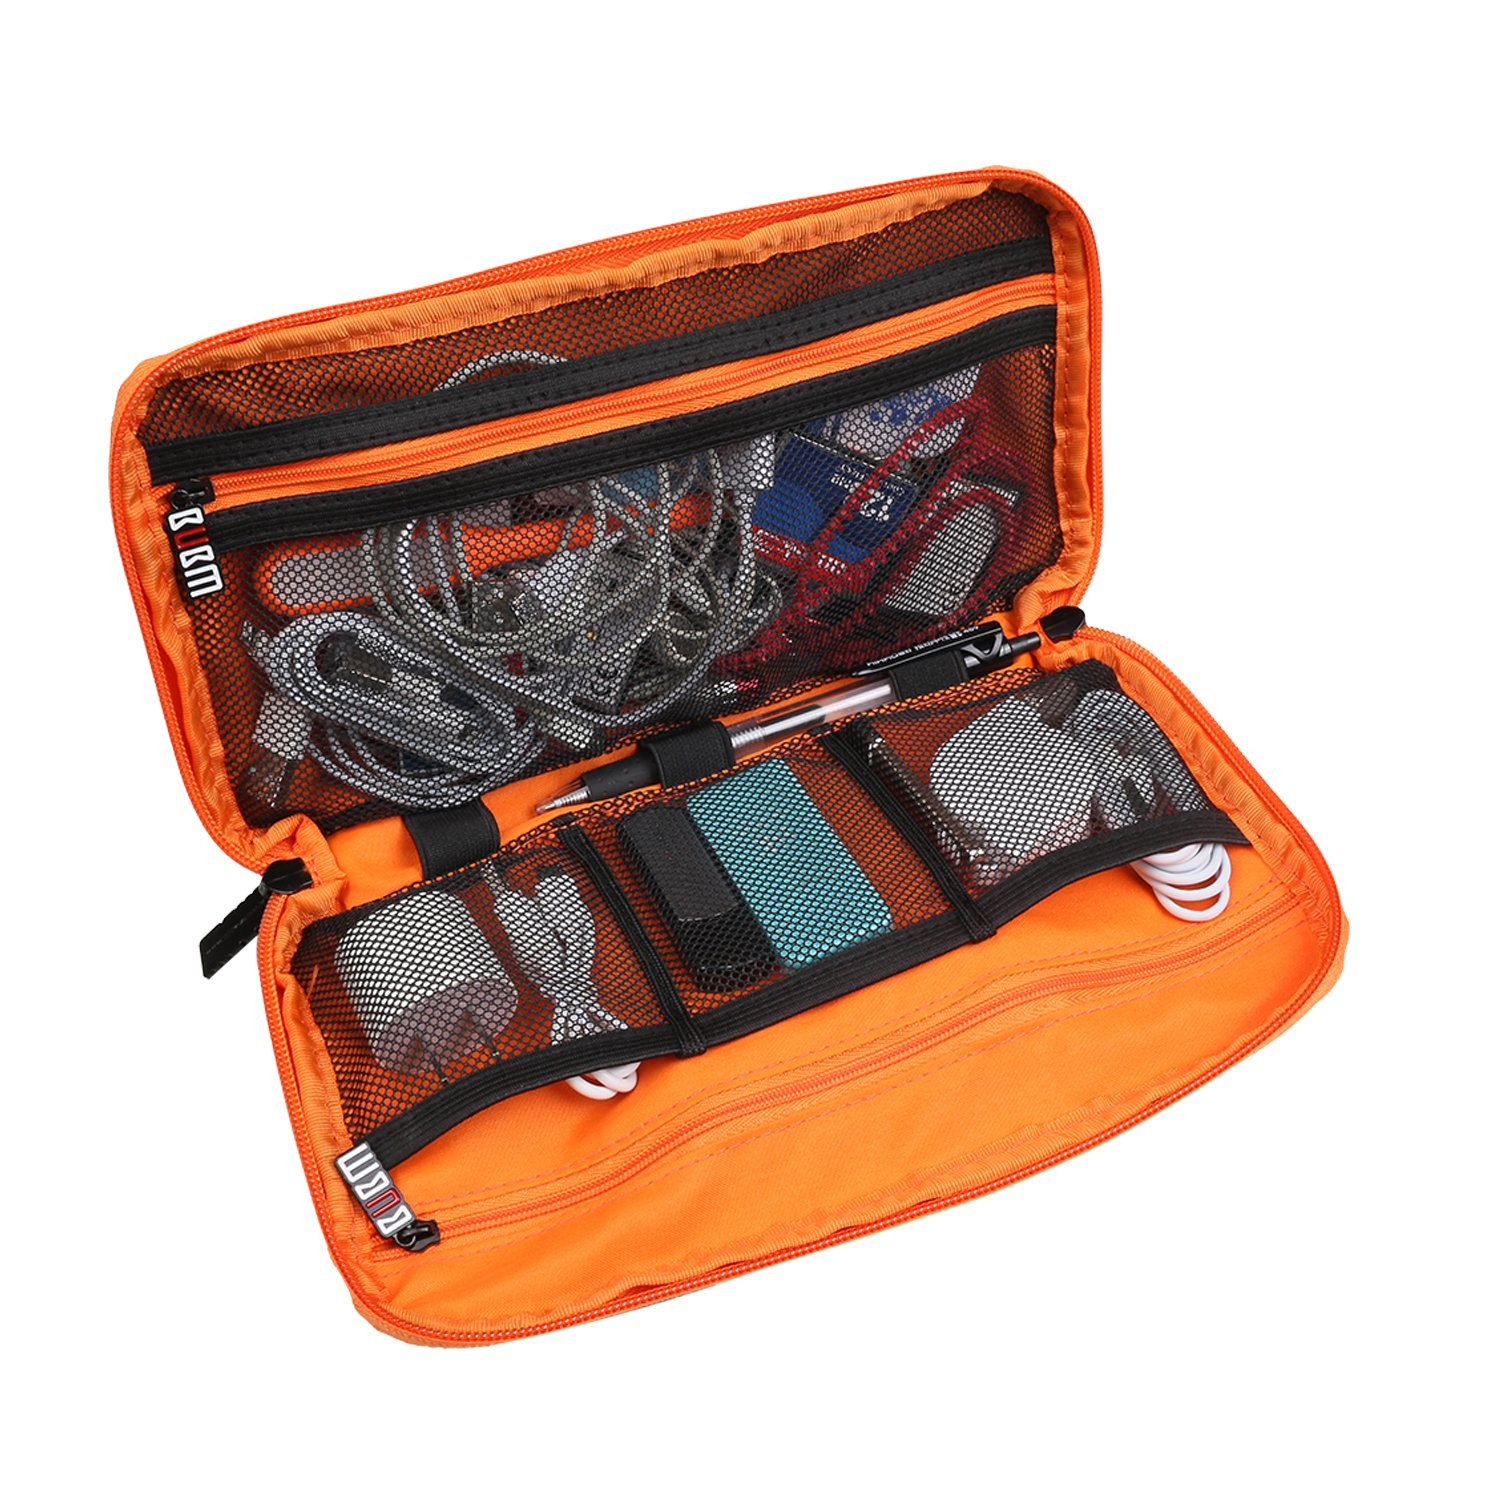 Top 10 Best Electronics Travel Carry Case Organizers 2019